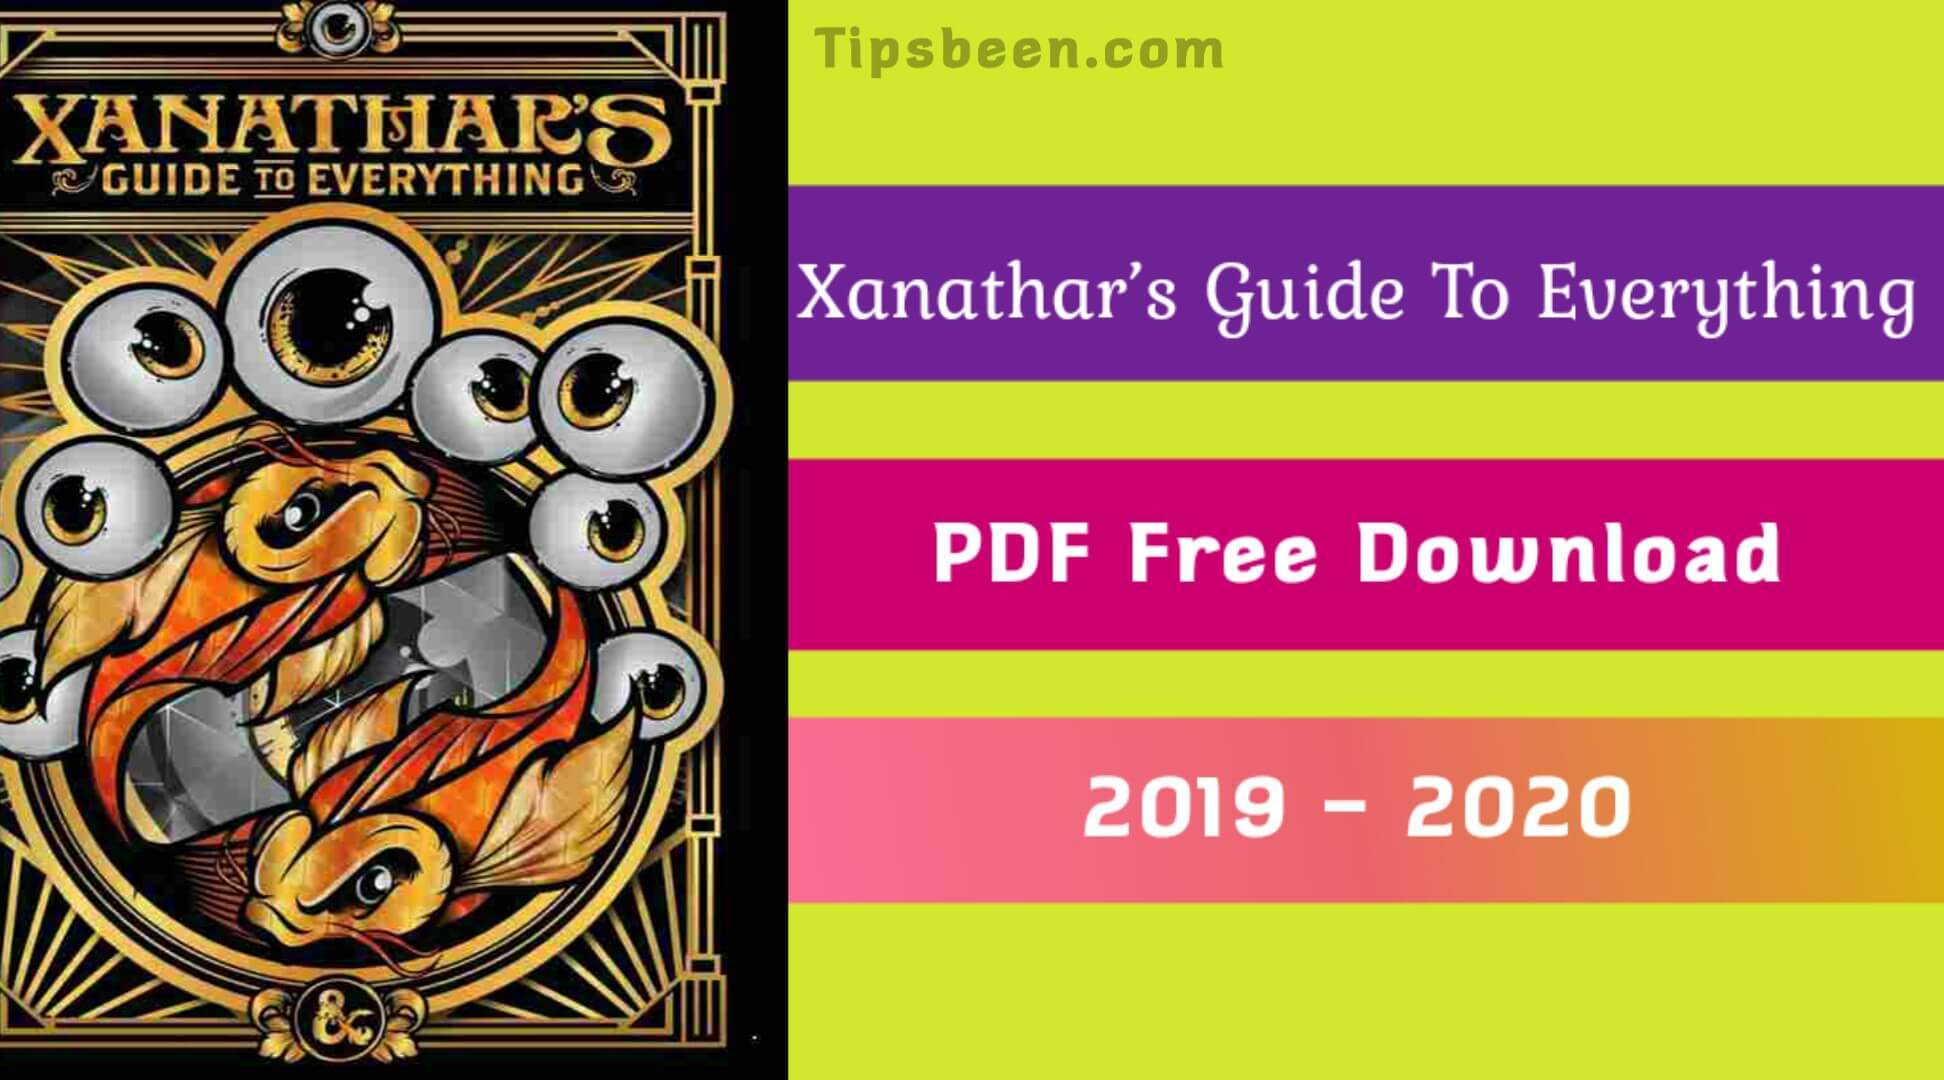 Xanathar's Guide To Everything PDF Free Download, DnD, D&D